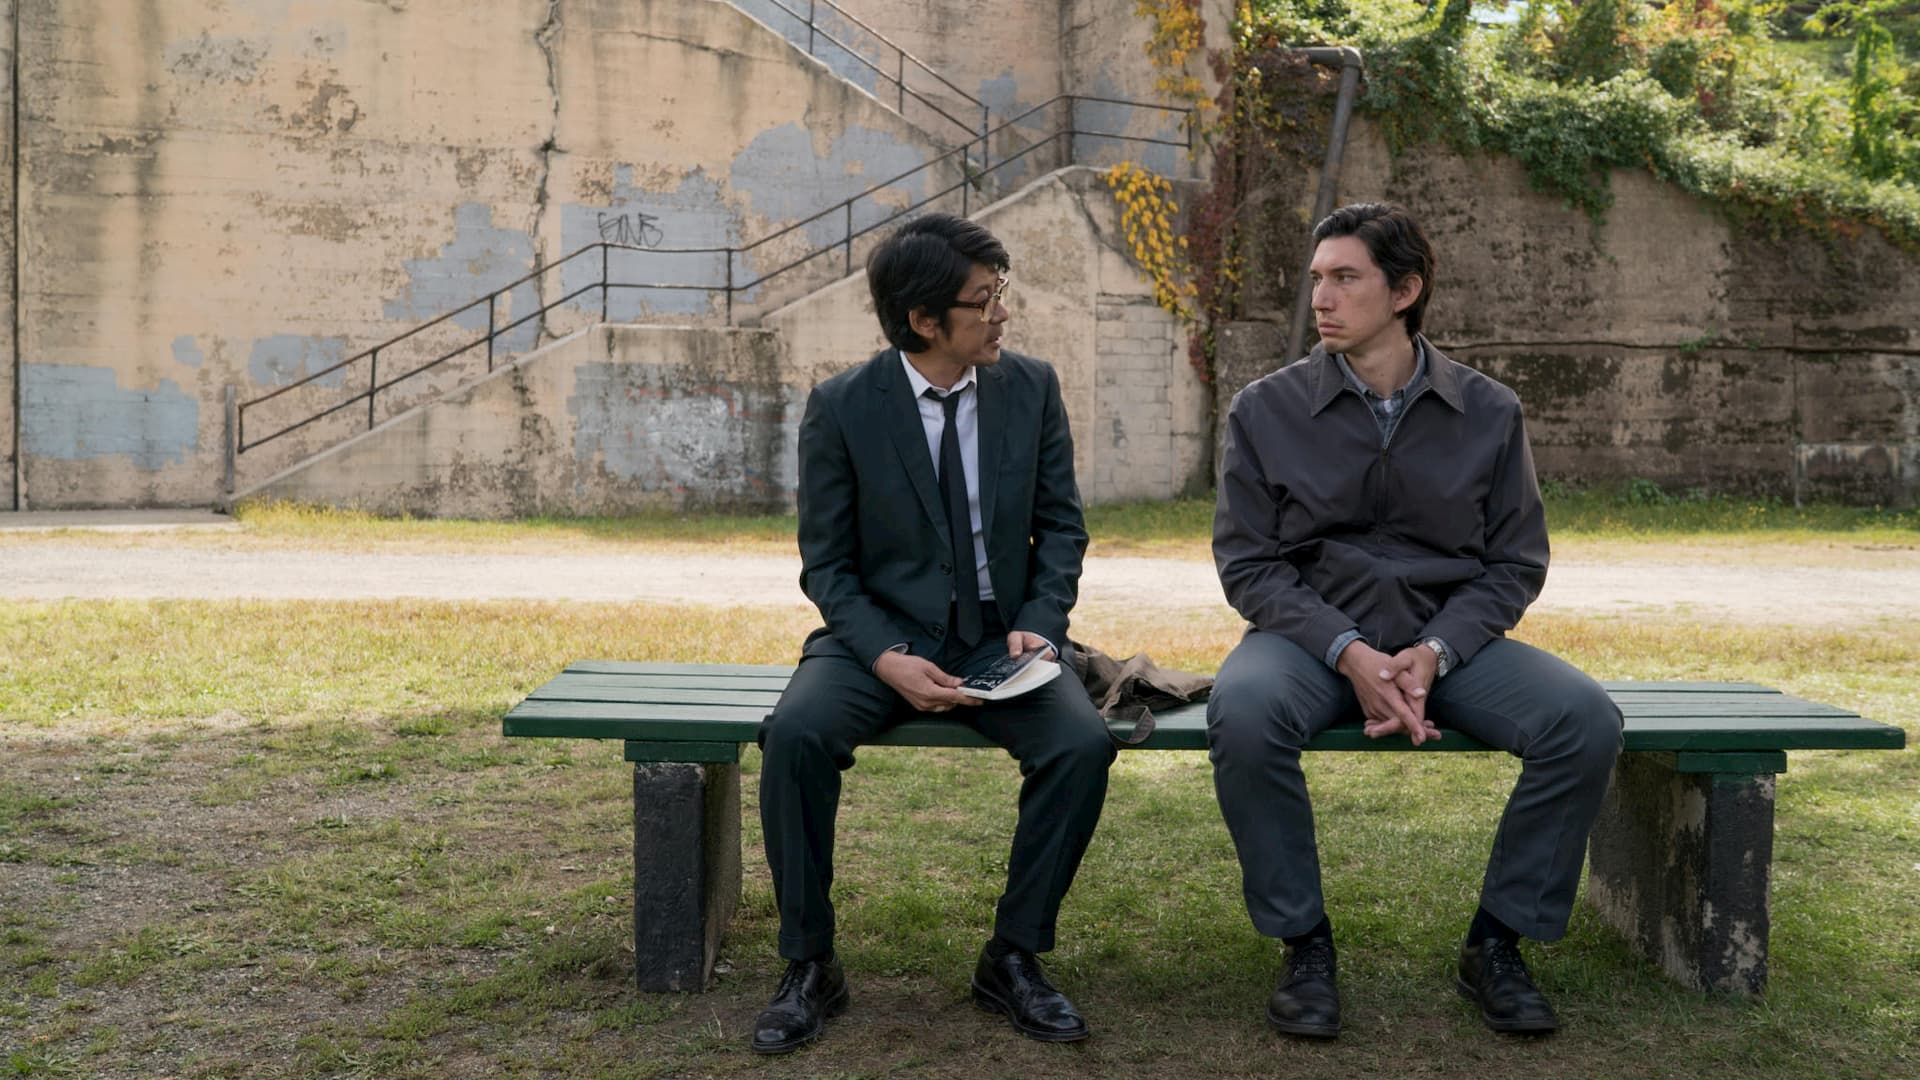 Paterson (Jim Jarmsuch, 2016), Soda Pictures, France / Germany / USA, colour, sound, 118 minutes